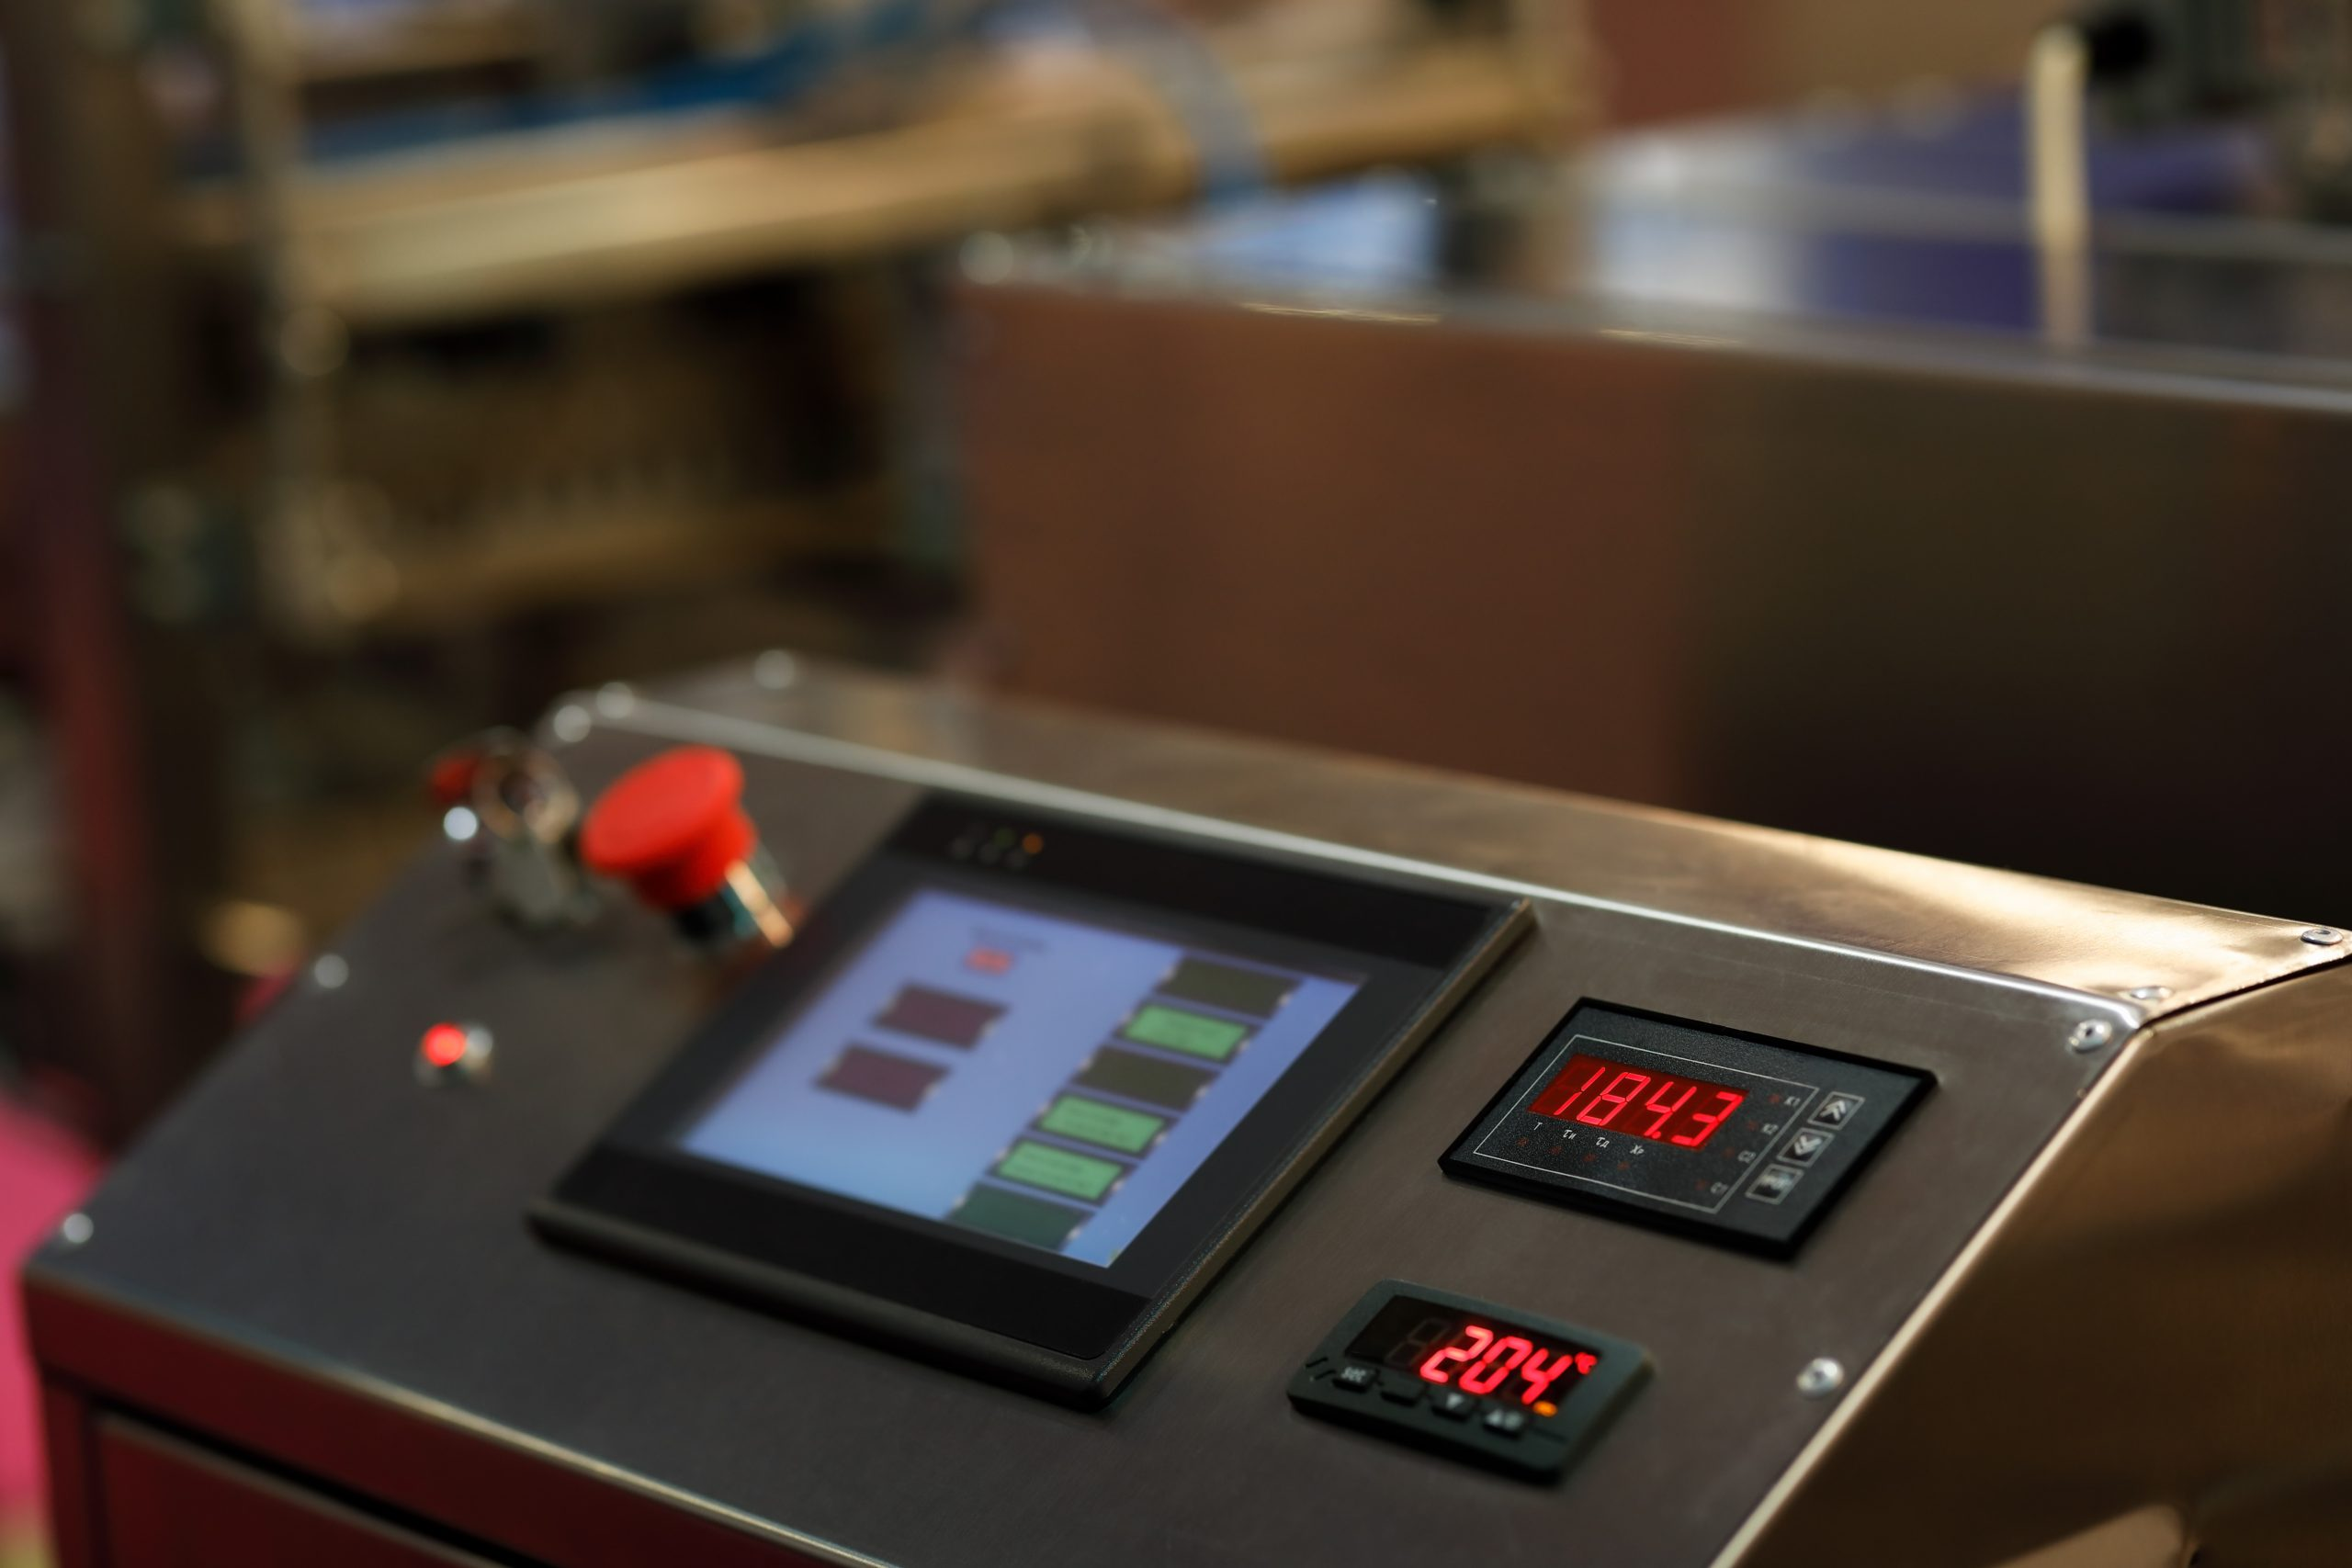 How to Get the Most Out of Your Industrial Control Panel